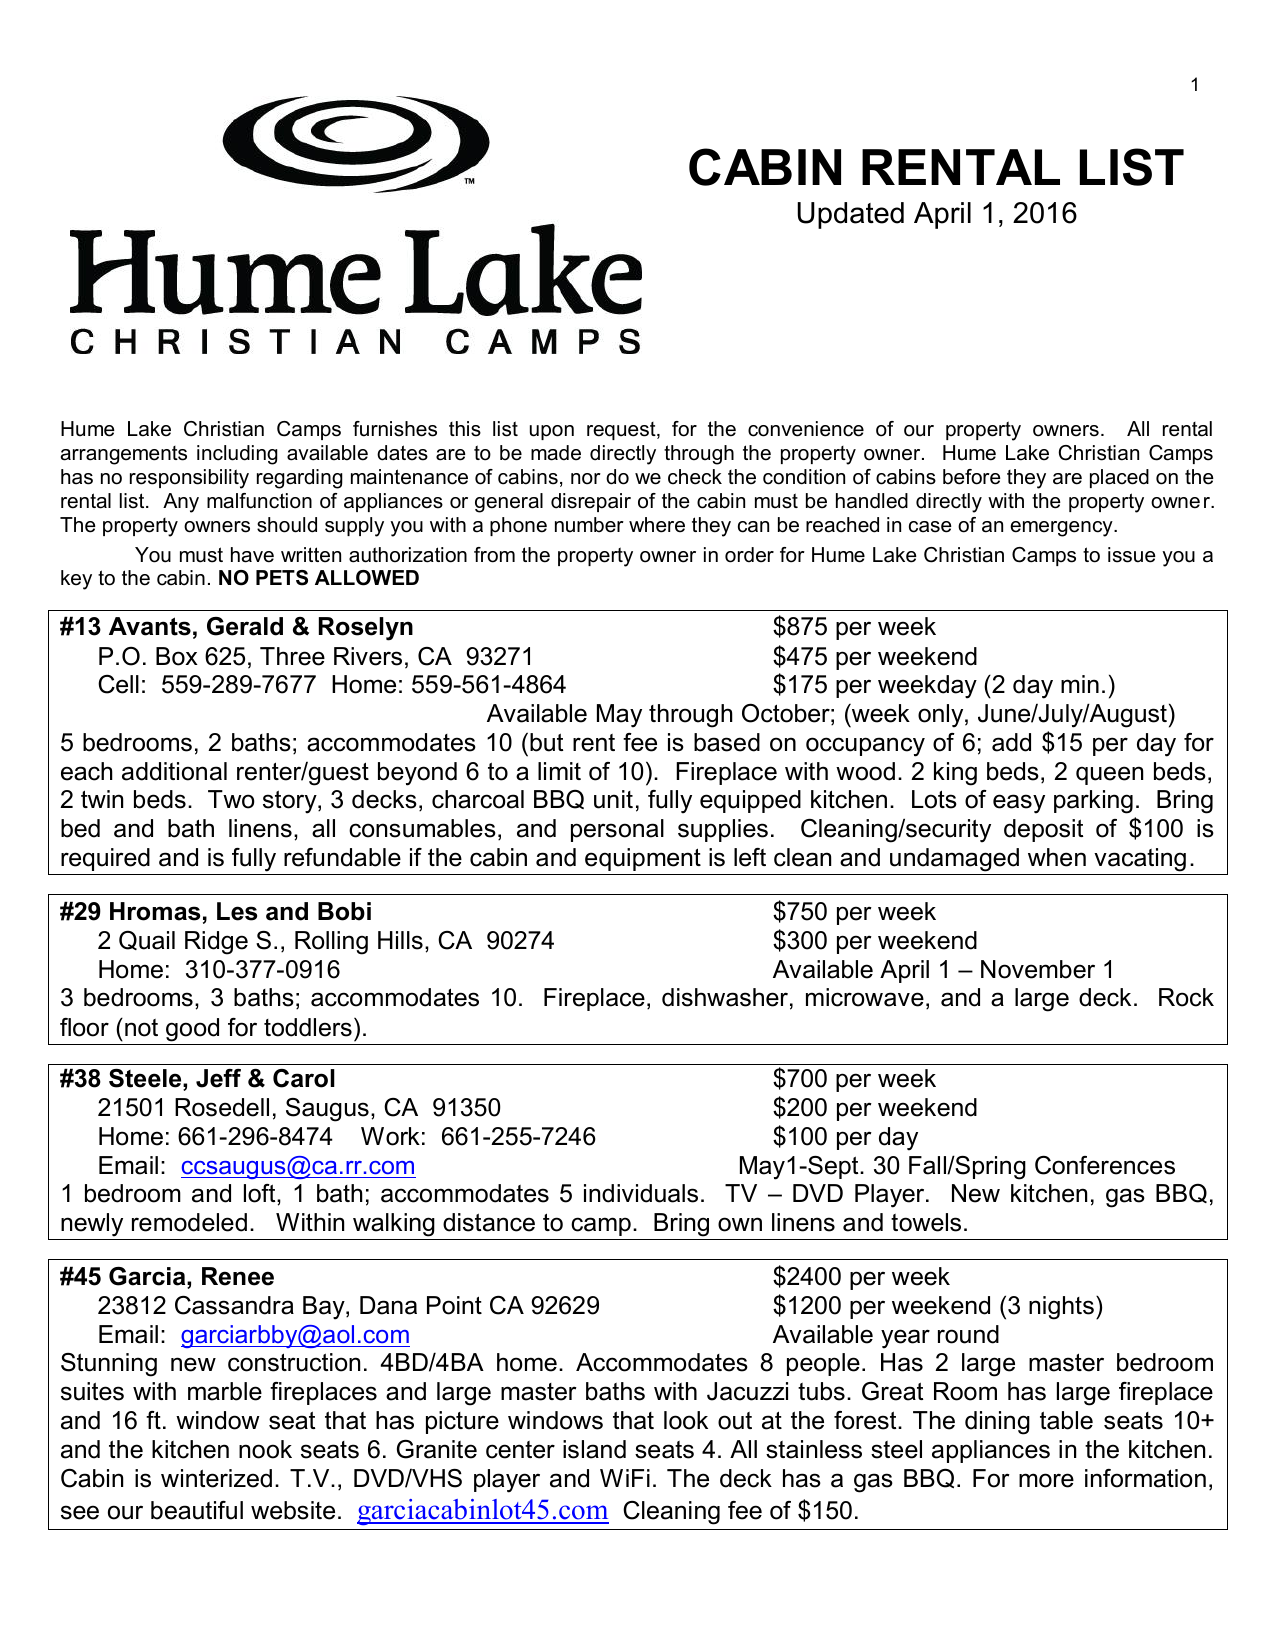 cabin rental list - Hume Christian Camps